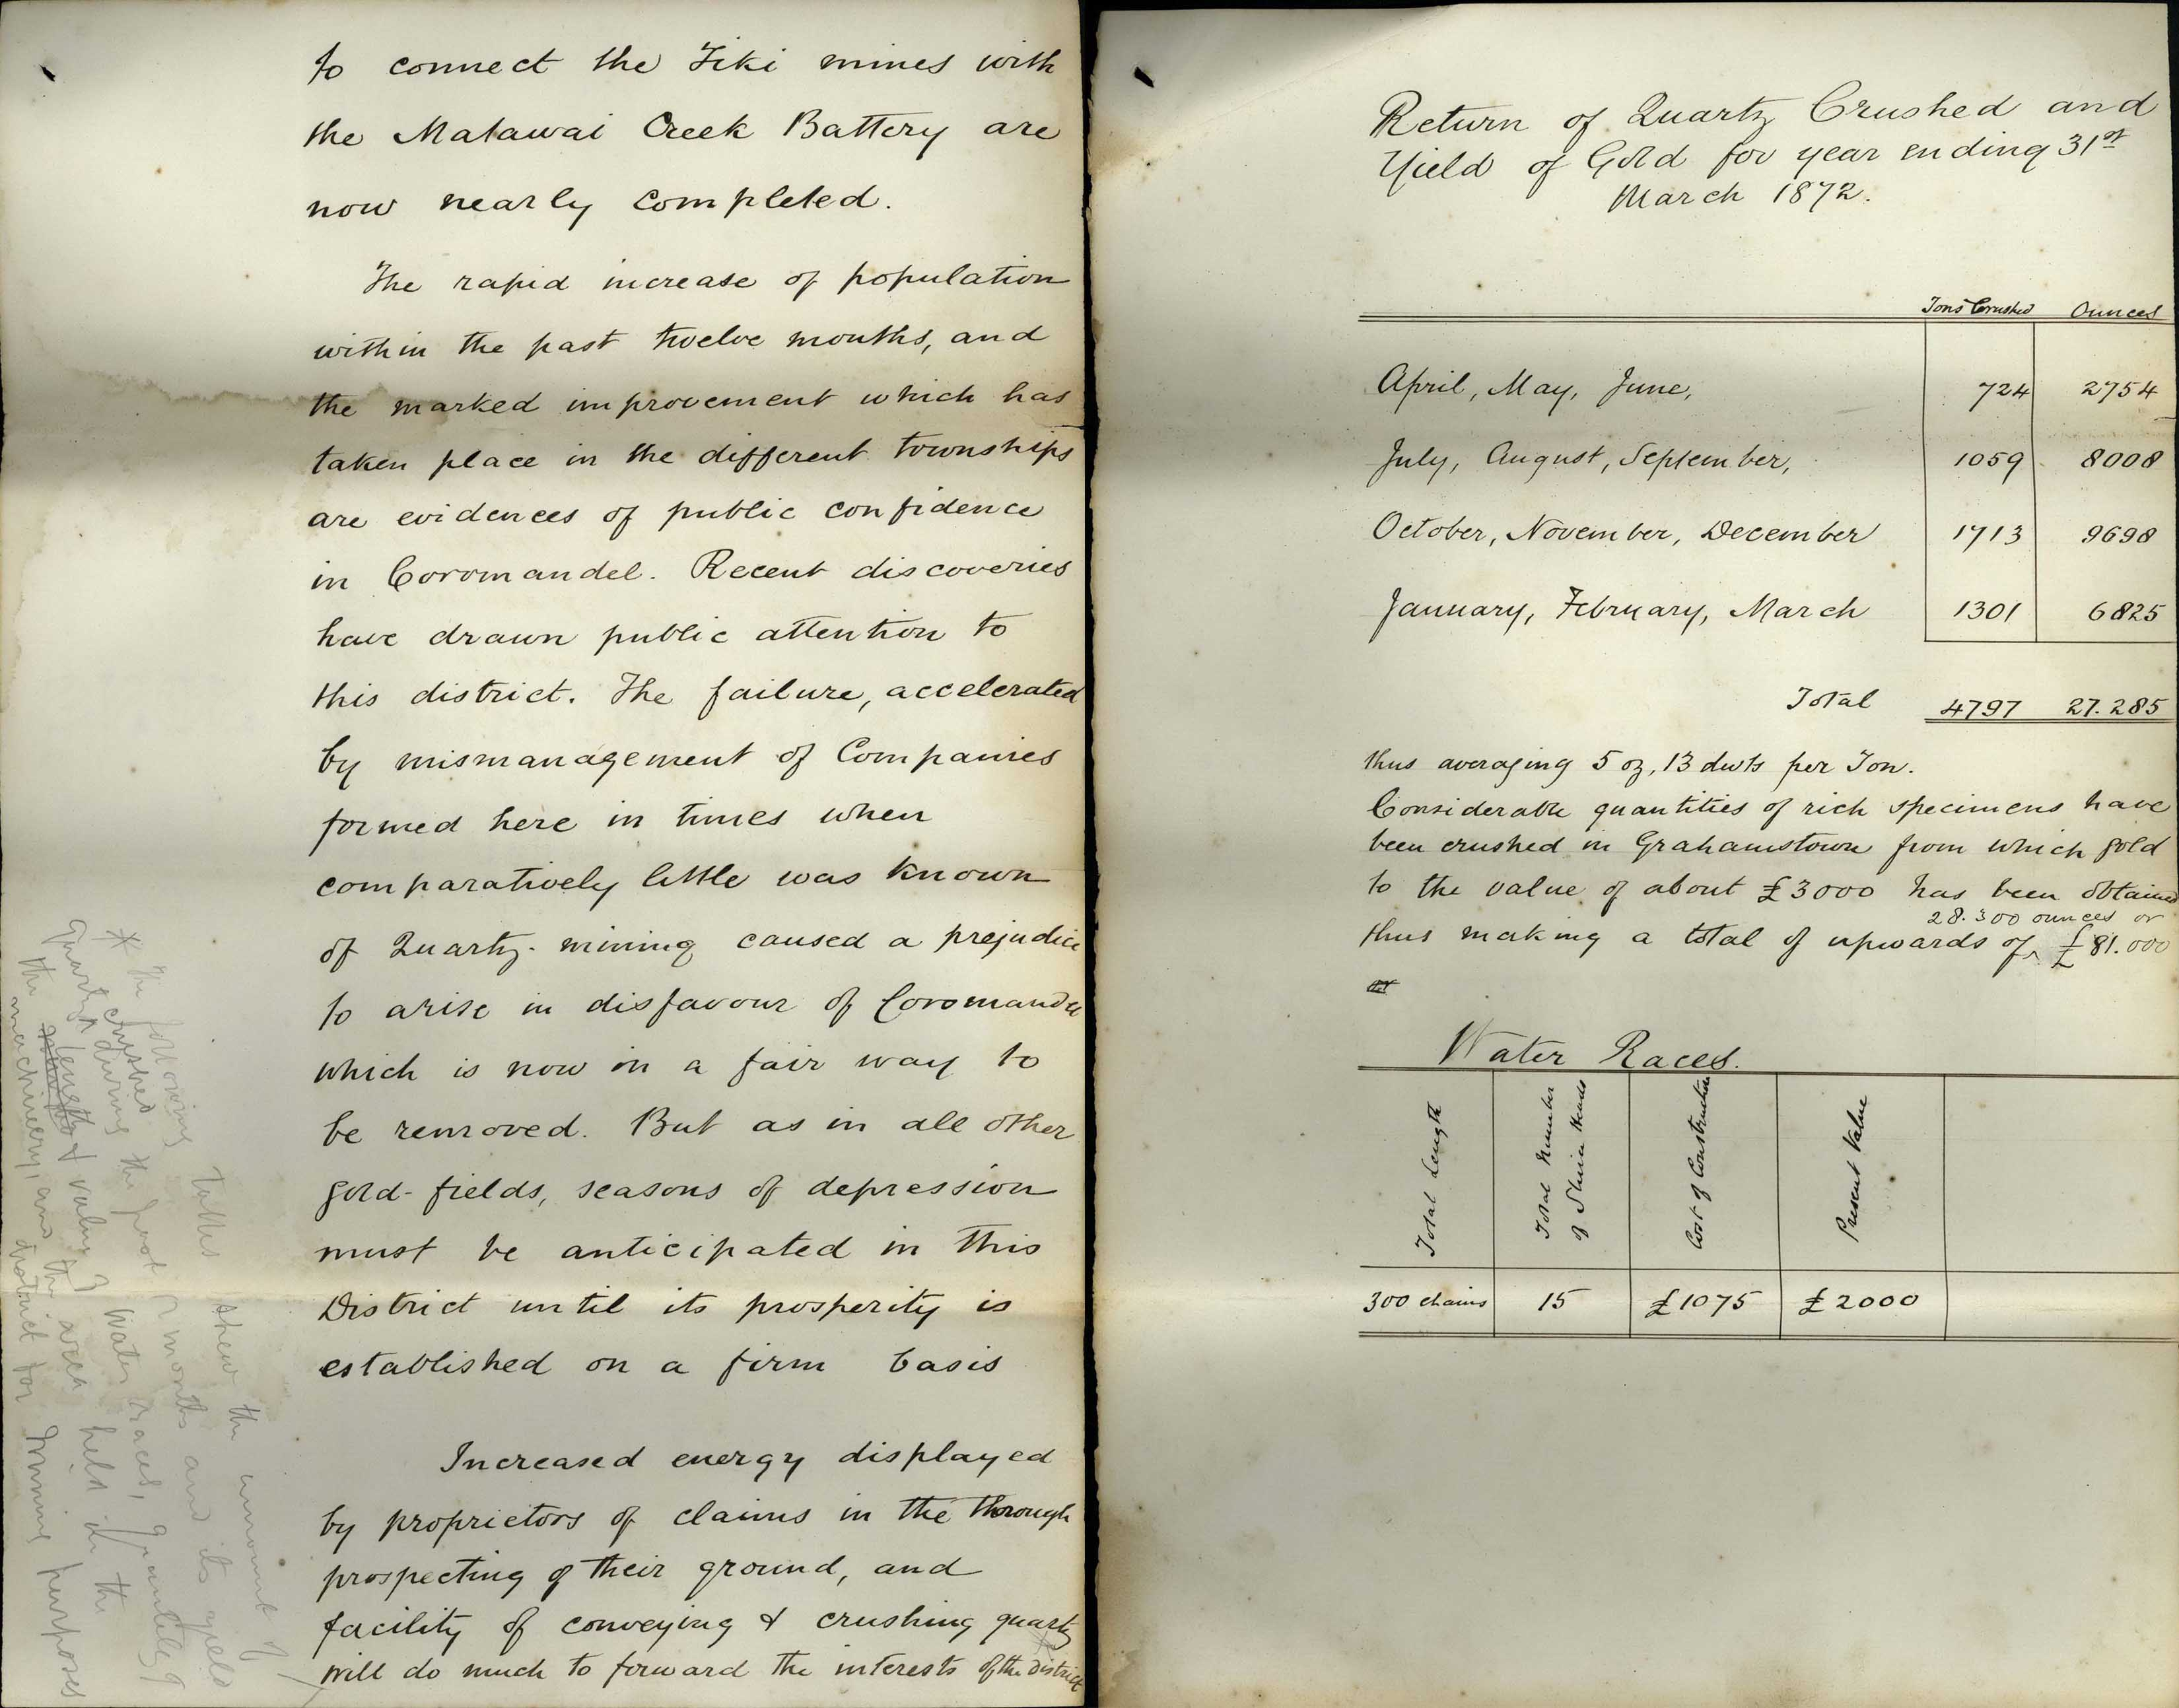 Digitised image of a handwritten mining report.